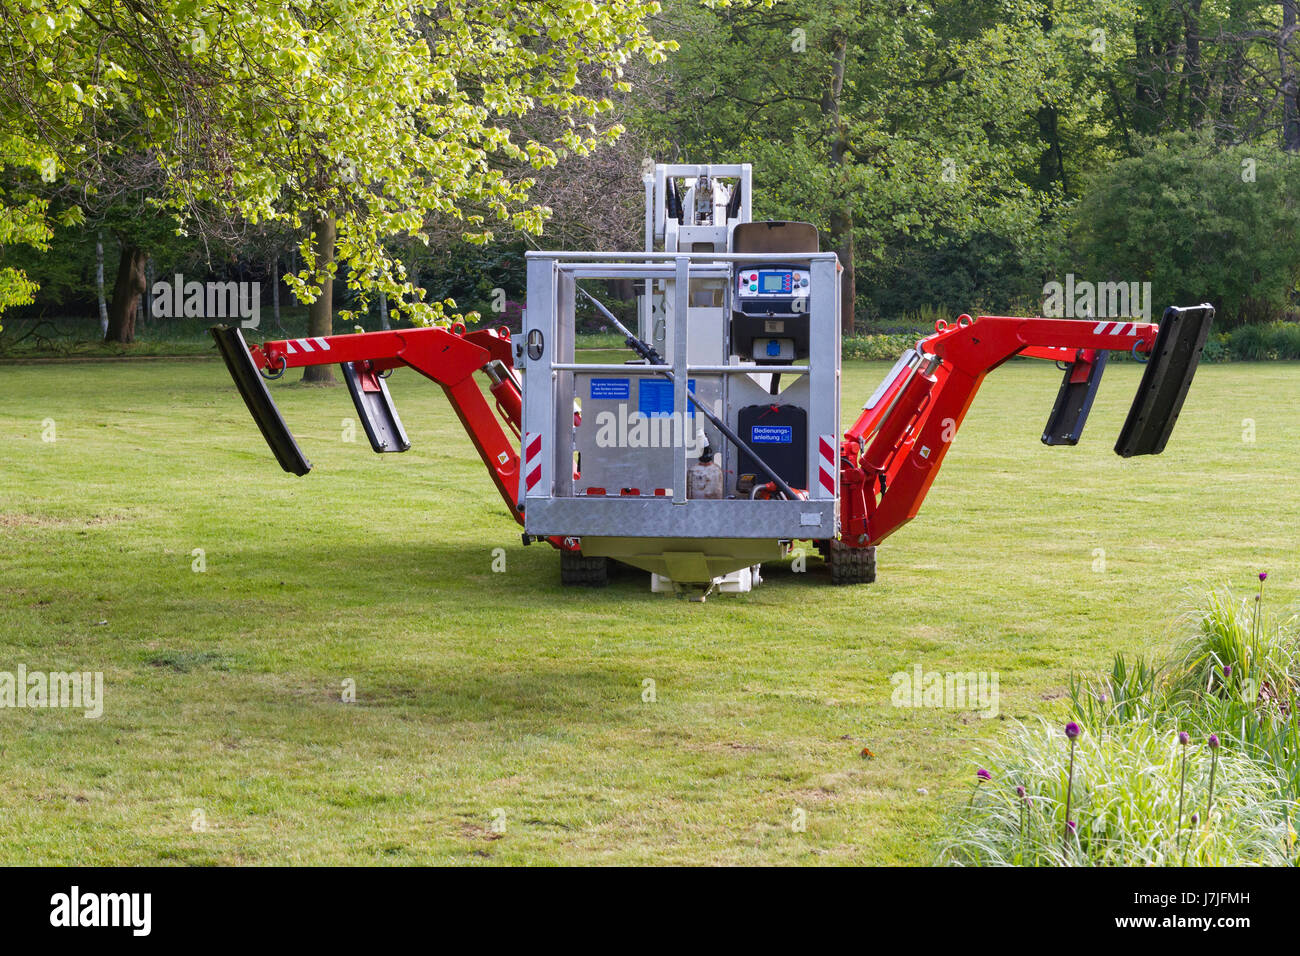 Self propelled cherry picker with extendable legs and caterpillar tracks being used to cut branches from trees - Stock Image